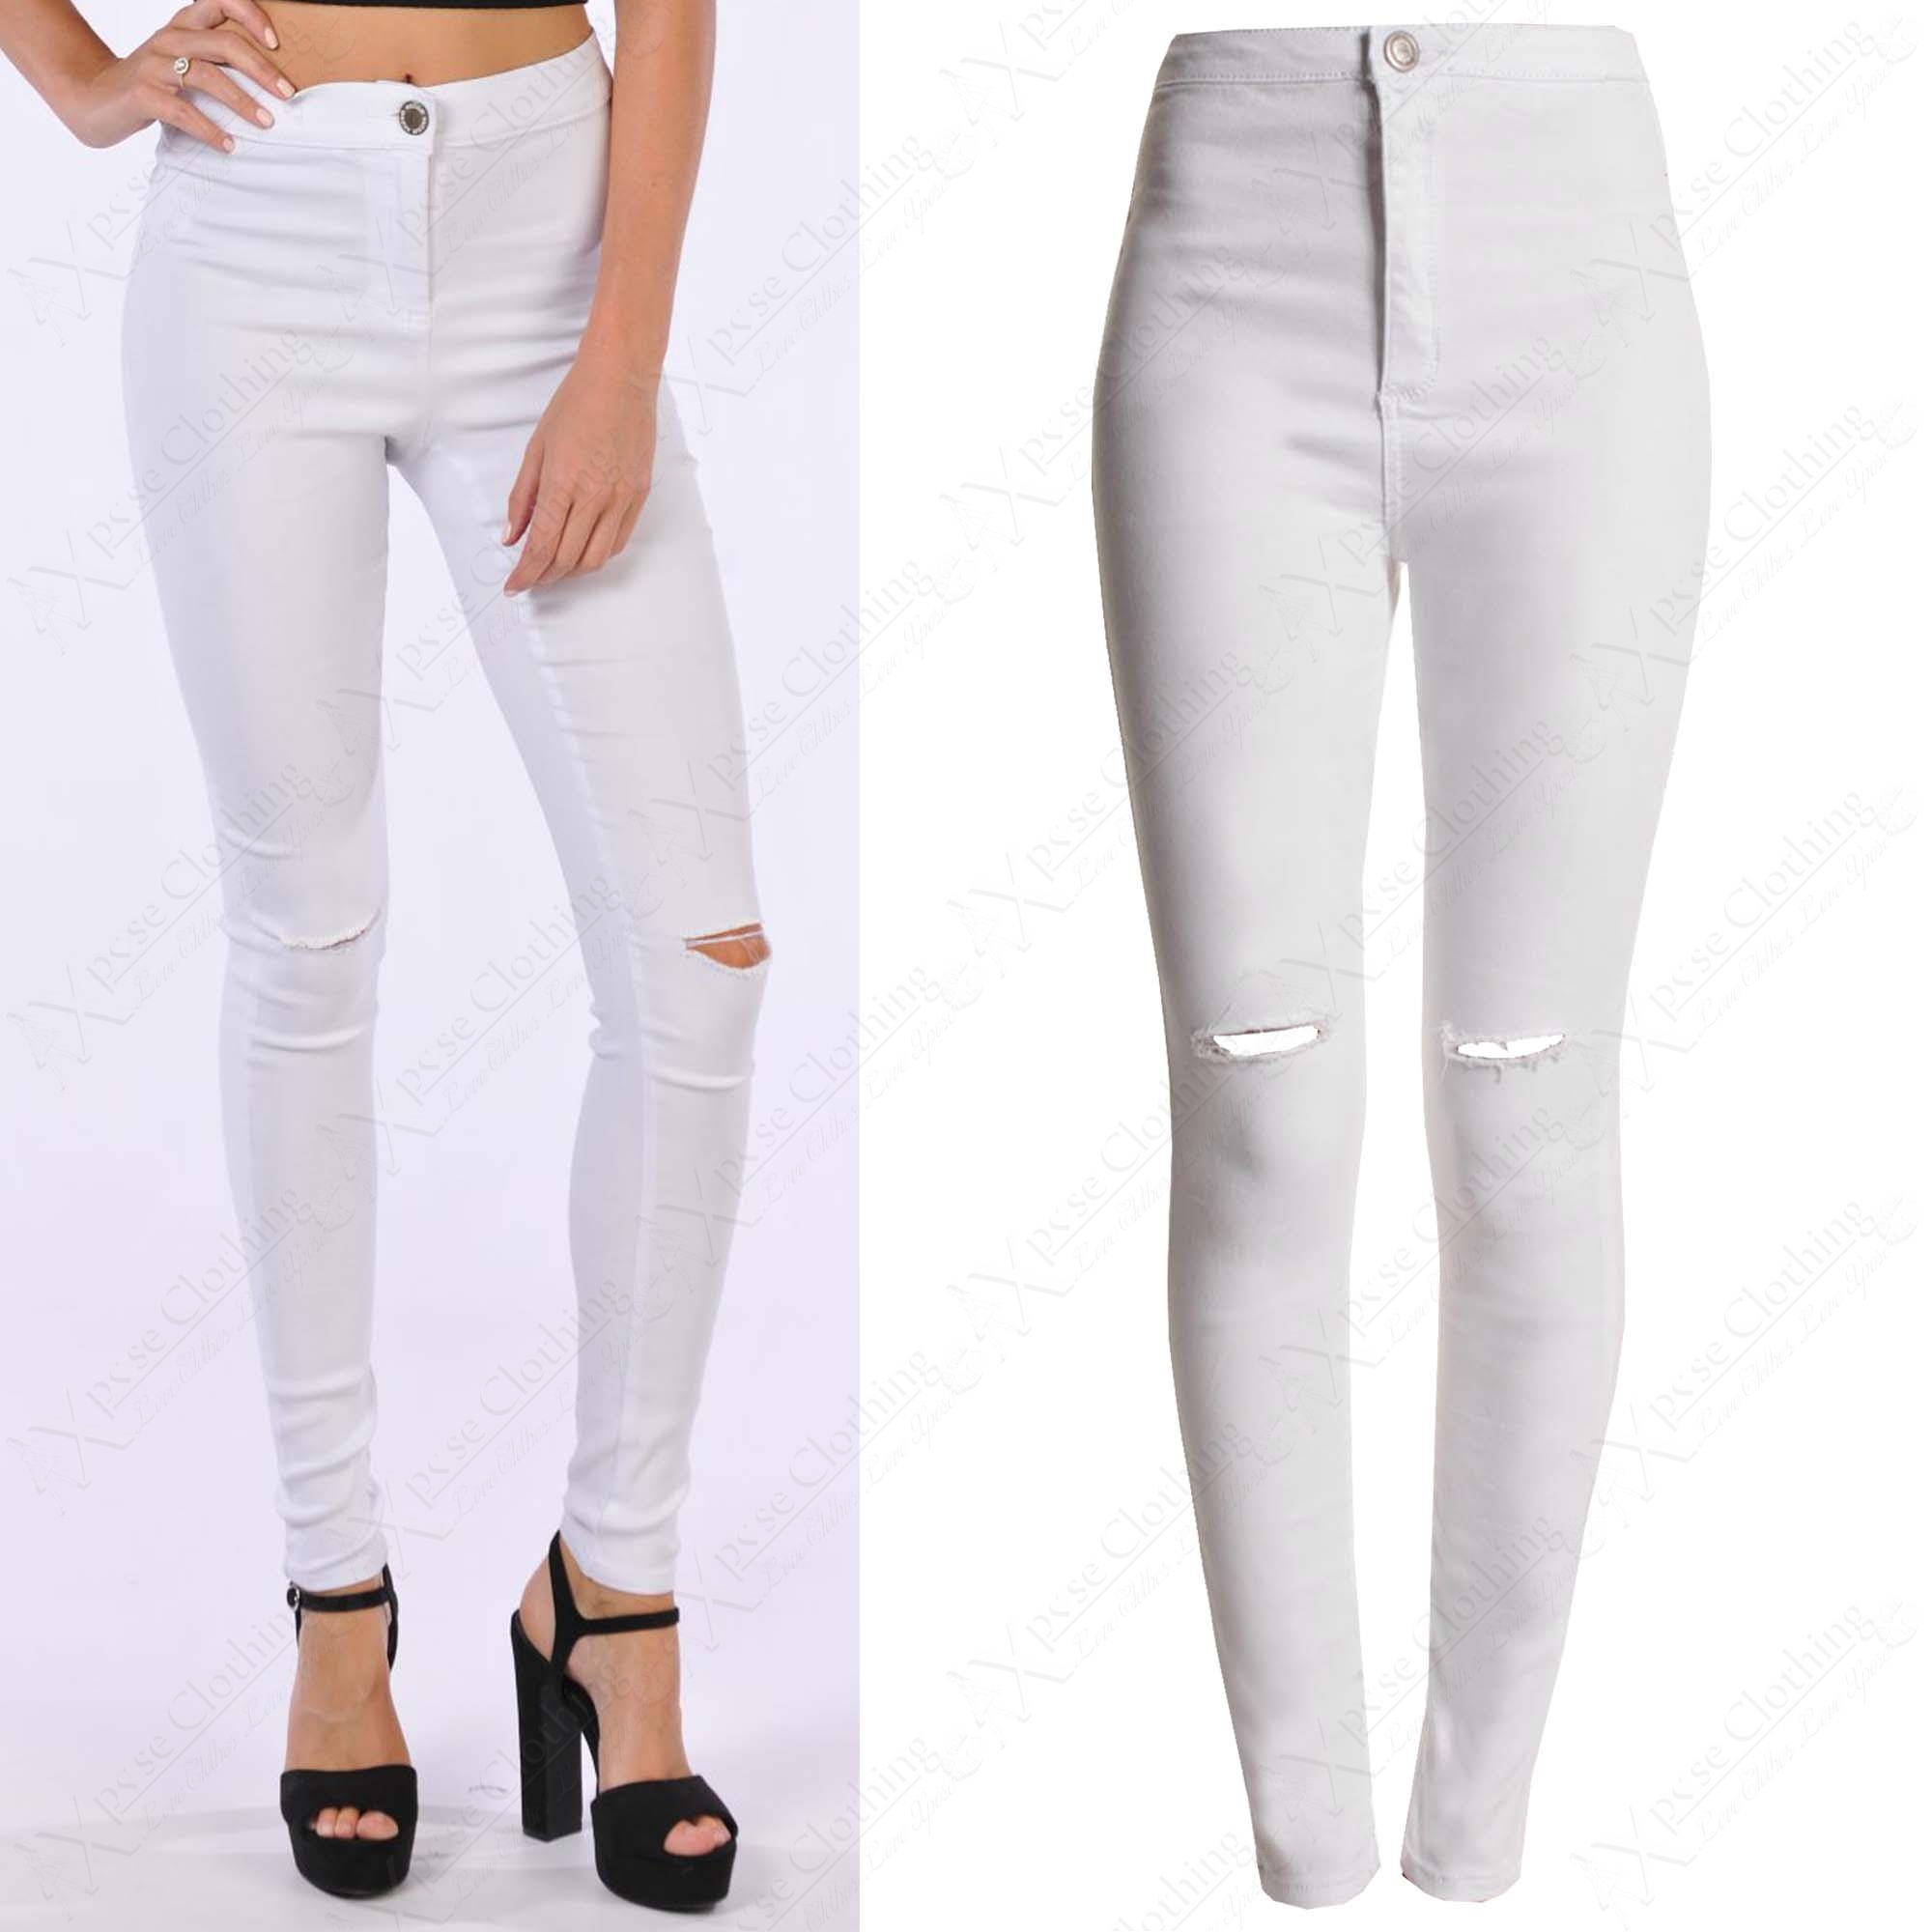 NEW WOMENS RIPPED KNEE WHITE SKINNY JEANS LADIES HIGH WAIST CUT